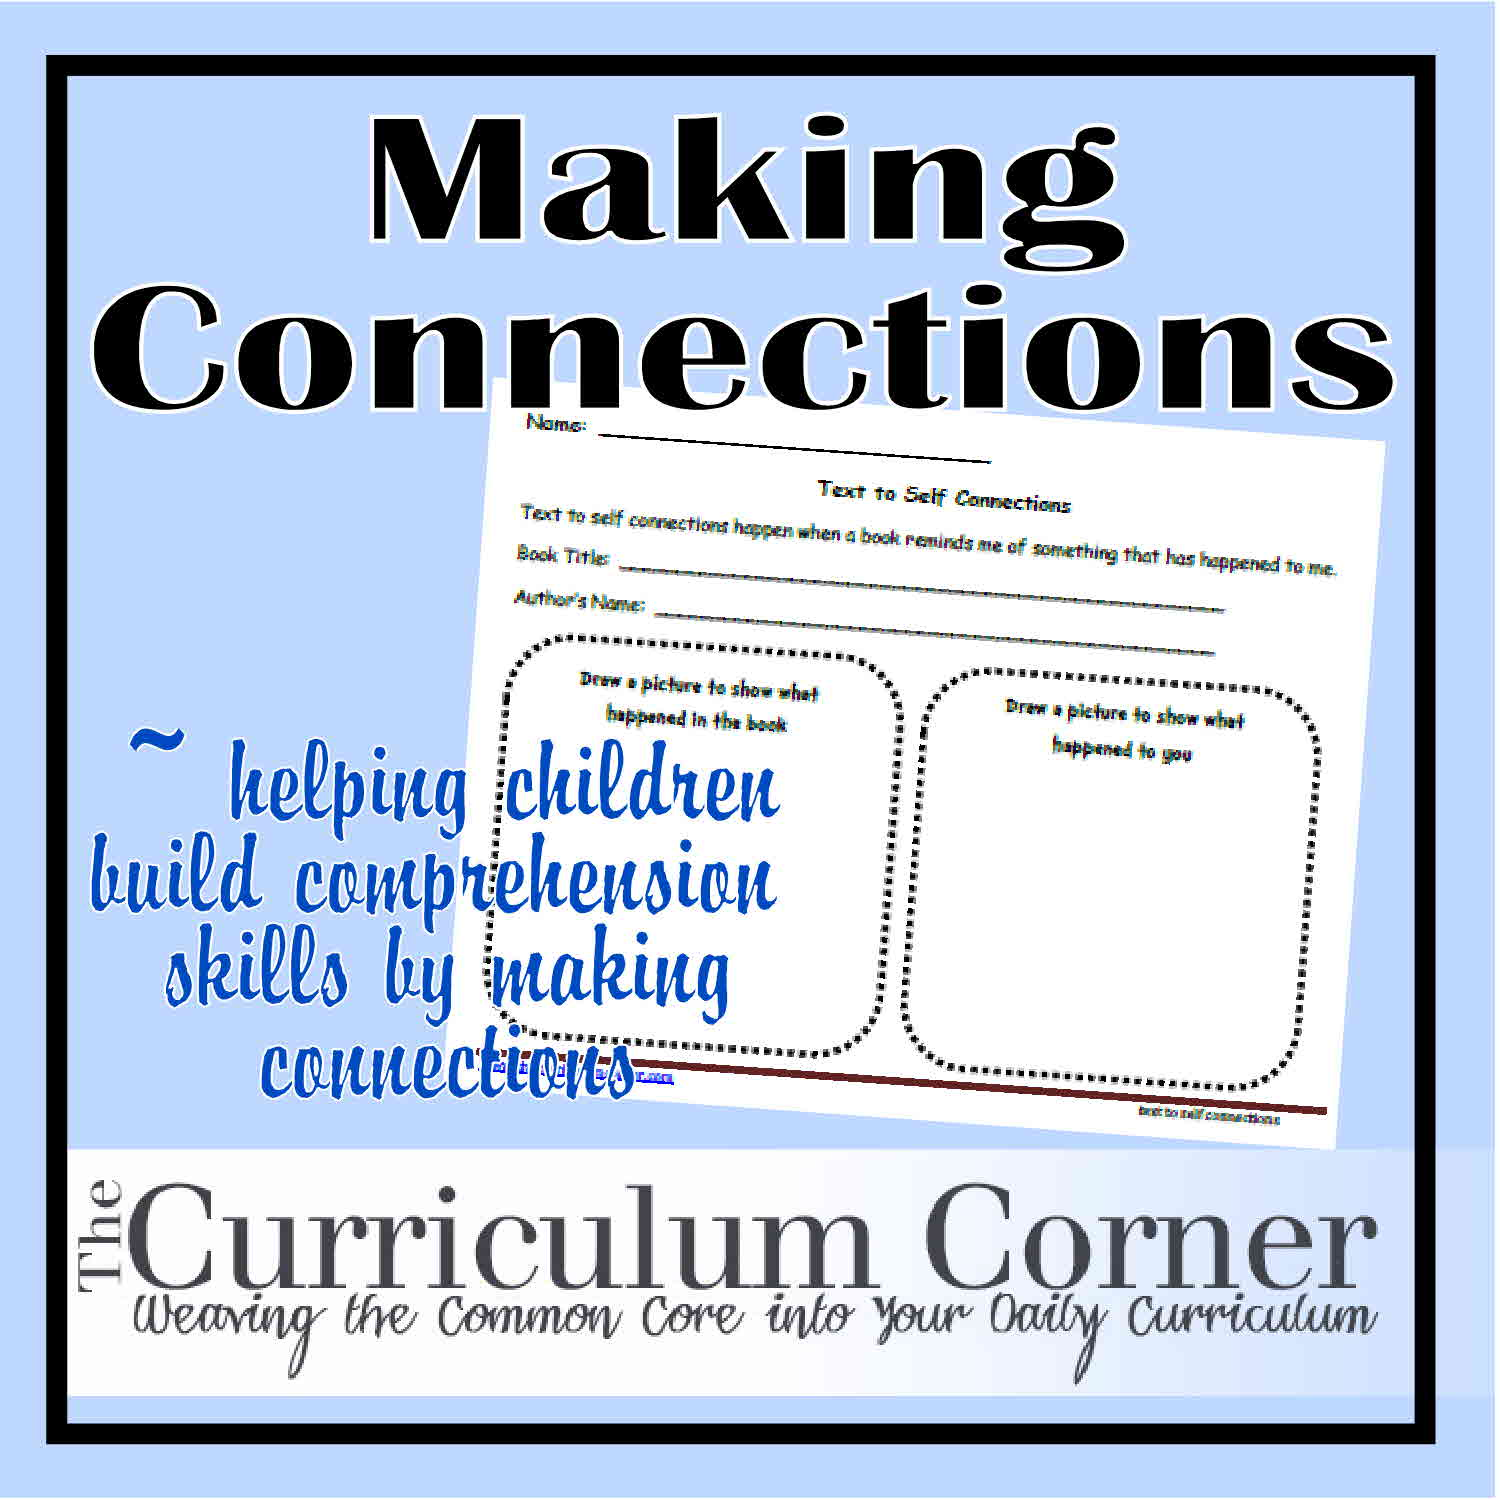 worksheet Making Connections Worksheet making connections the curriculum corner 123 their comprehension skills by having them make while they read we have created these printable forms to this an easy lesson te